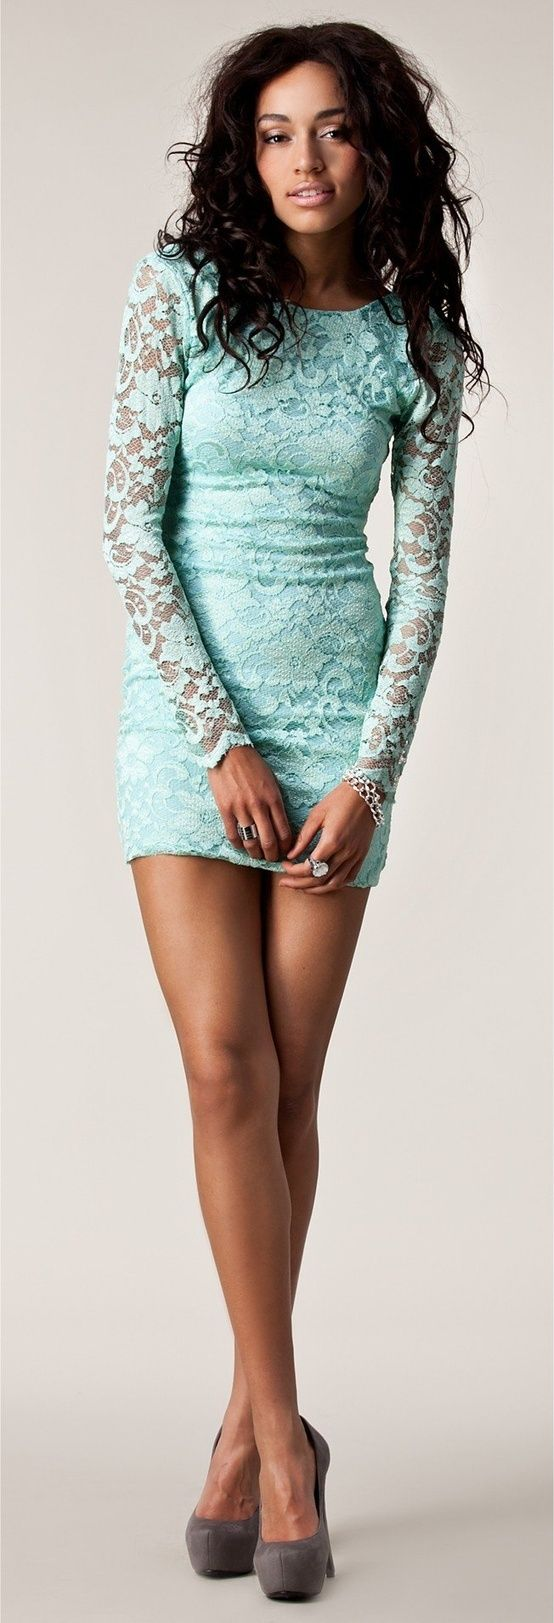 Mint long sleeve dress. Love lace and the color